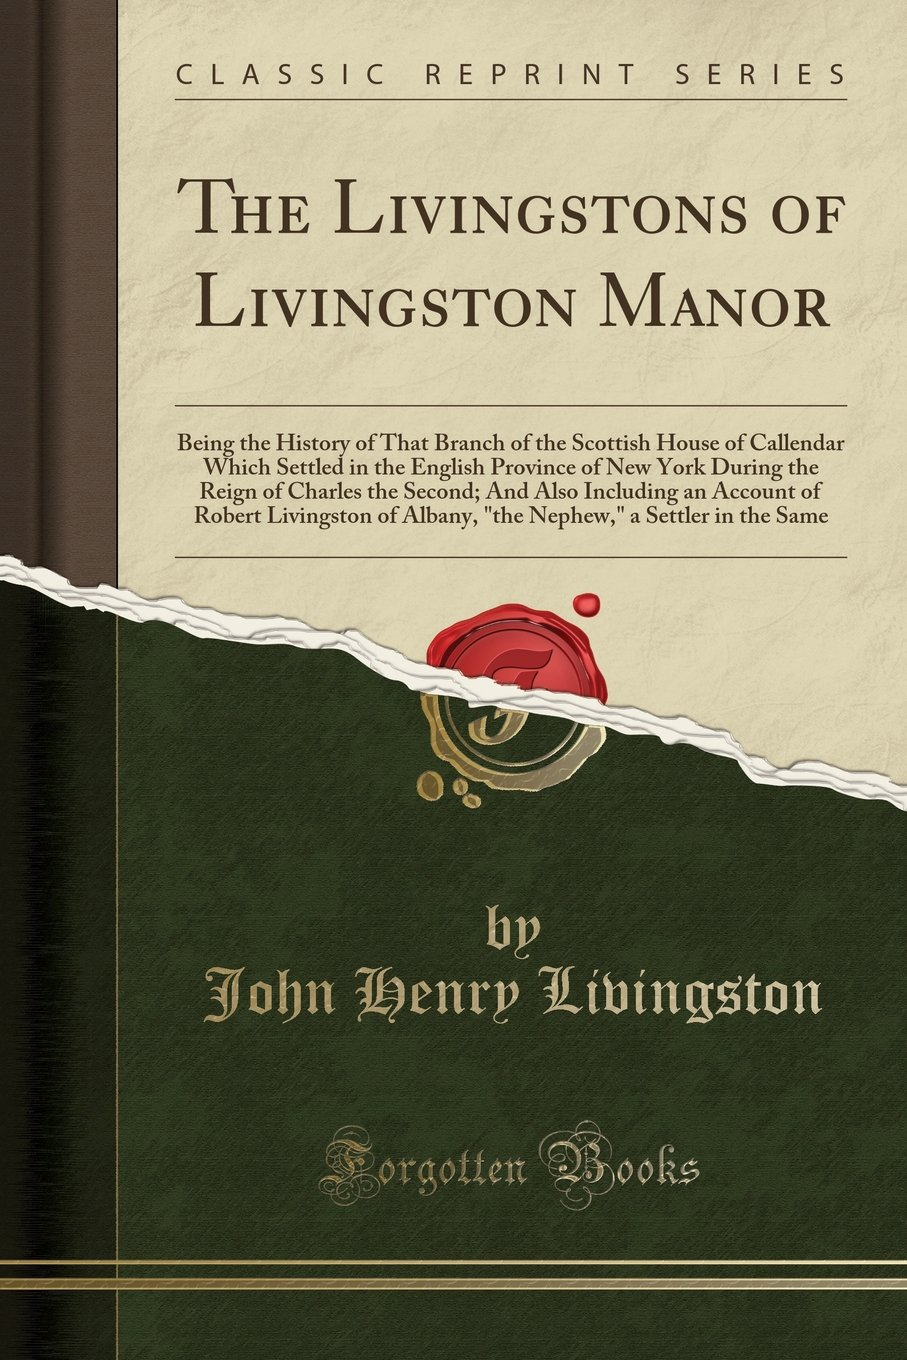 The Livingstons of Livingston Manor: Being the History of That Branch of the Scottish House of Callendar Which Settled in the English Province of New ... an Account of Robert Livingston of Albany PDF